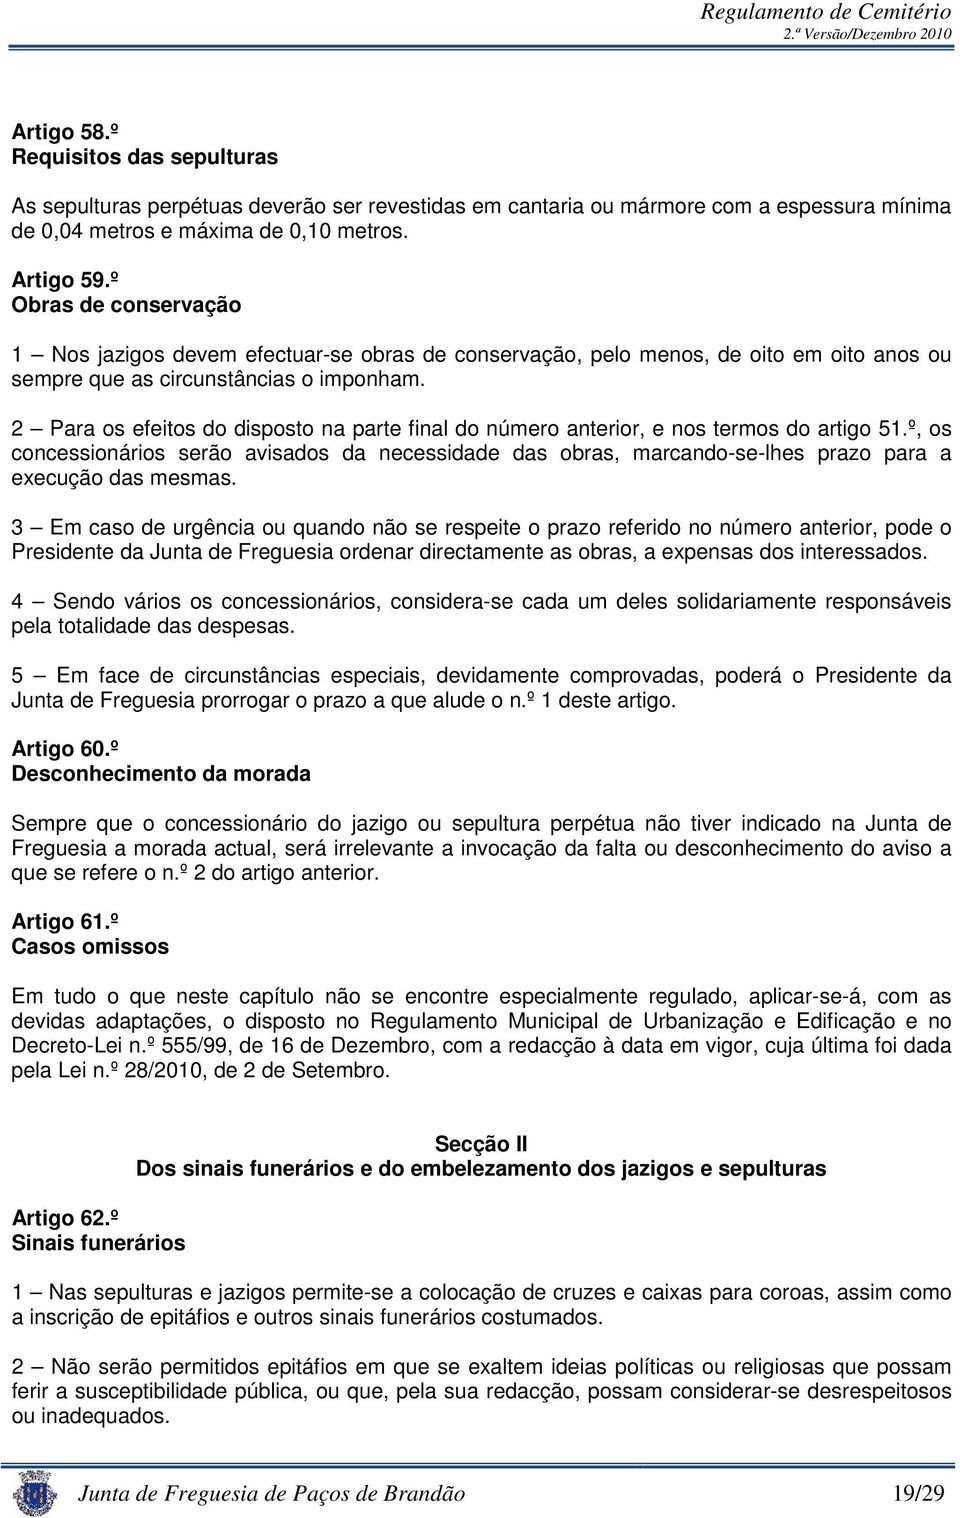 2 Para os efeitos do disposto na parte final do número anterior, e nos termos do artigo 51.